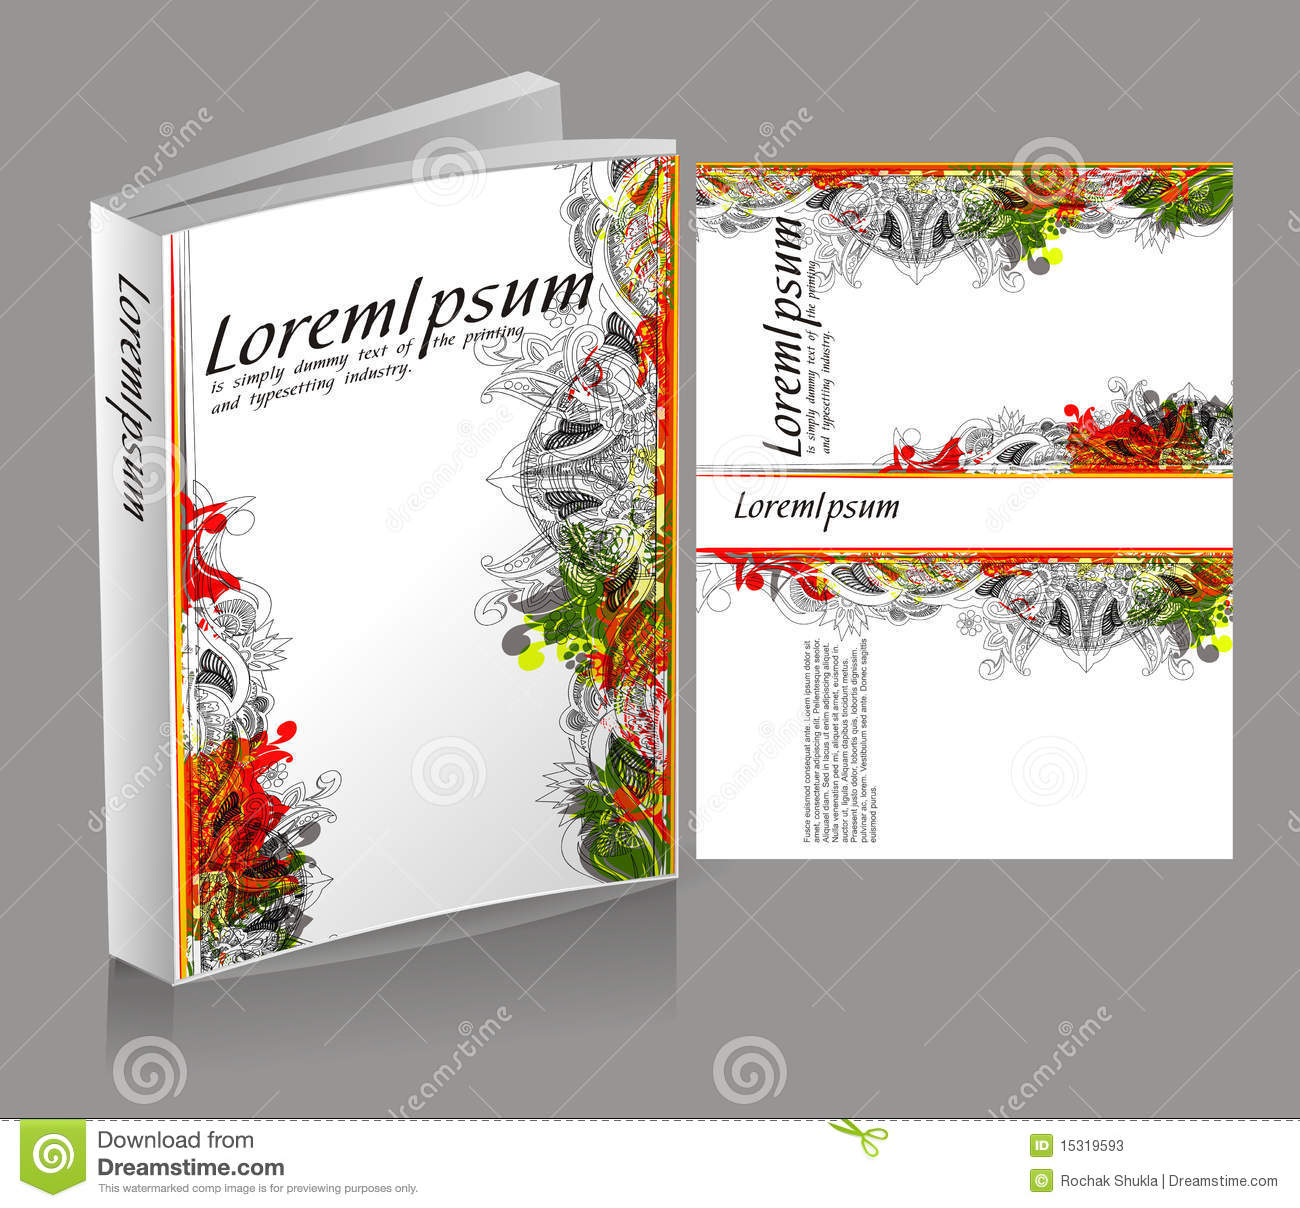 Book Cover Design Gimp : Book cover design stock vector image of closed modern